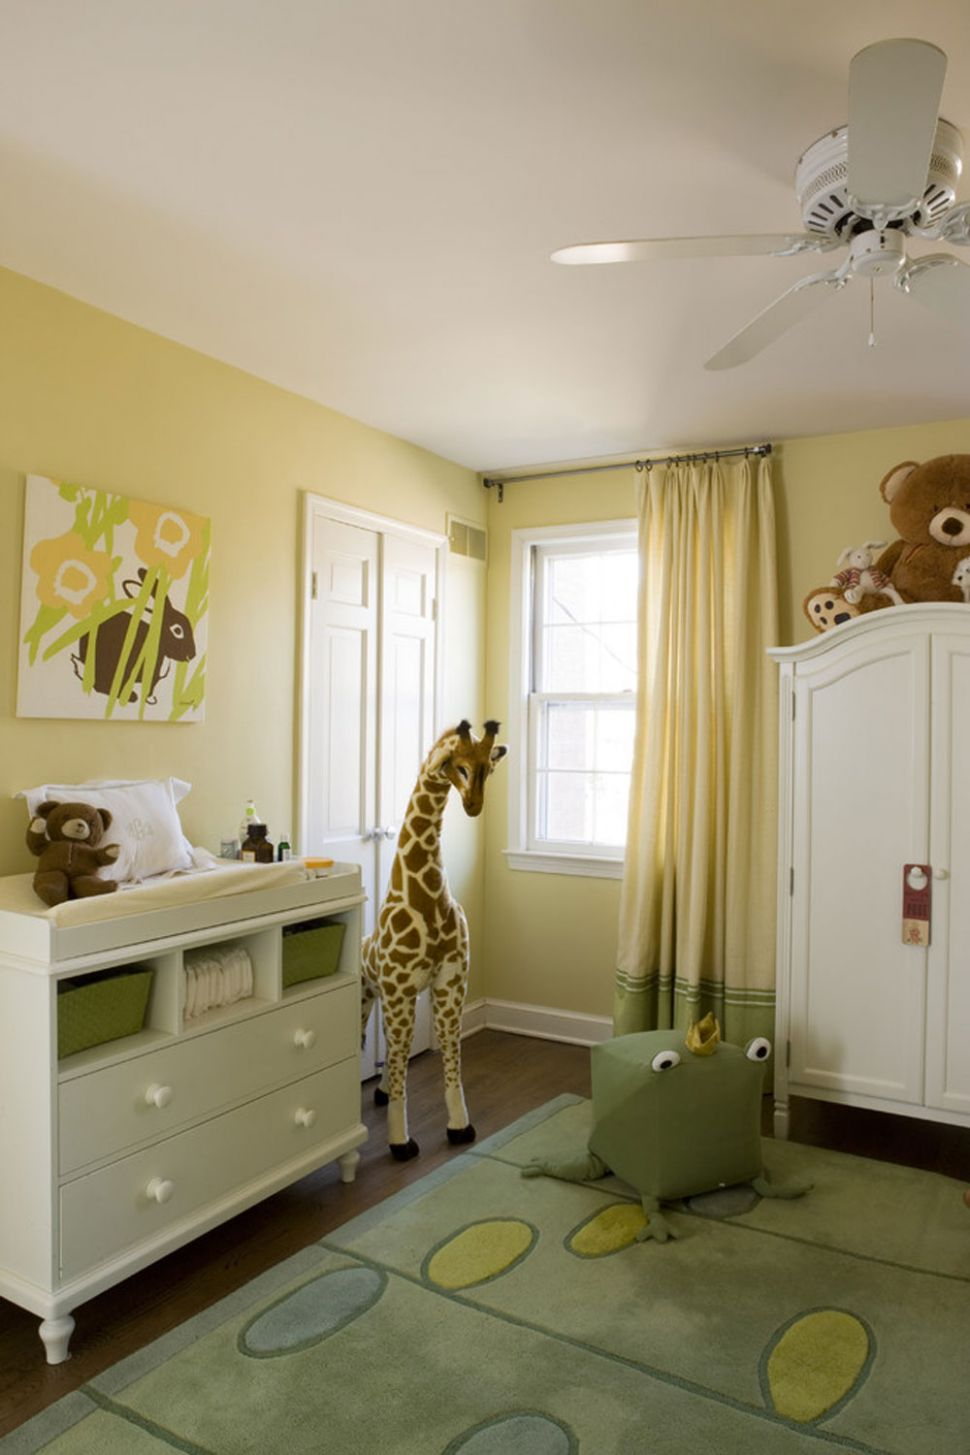 Baby Nursery Color Schemes For Your Baby's Room